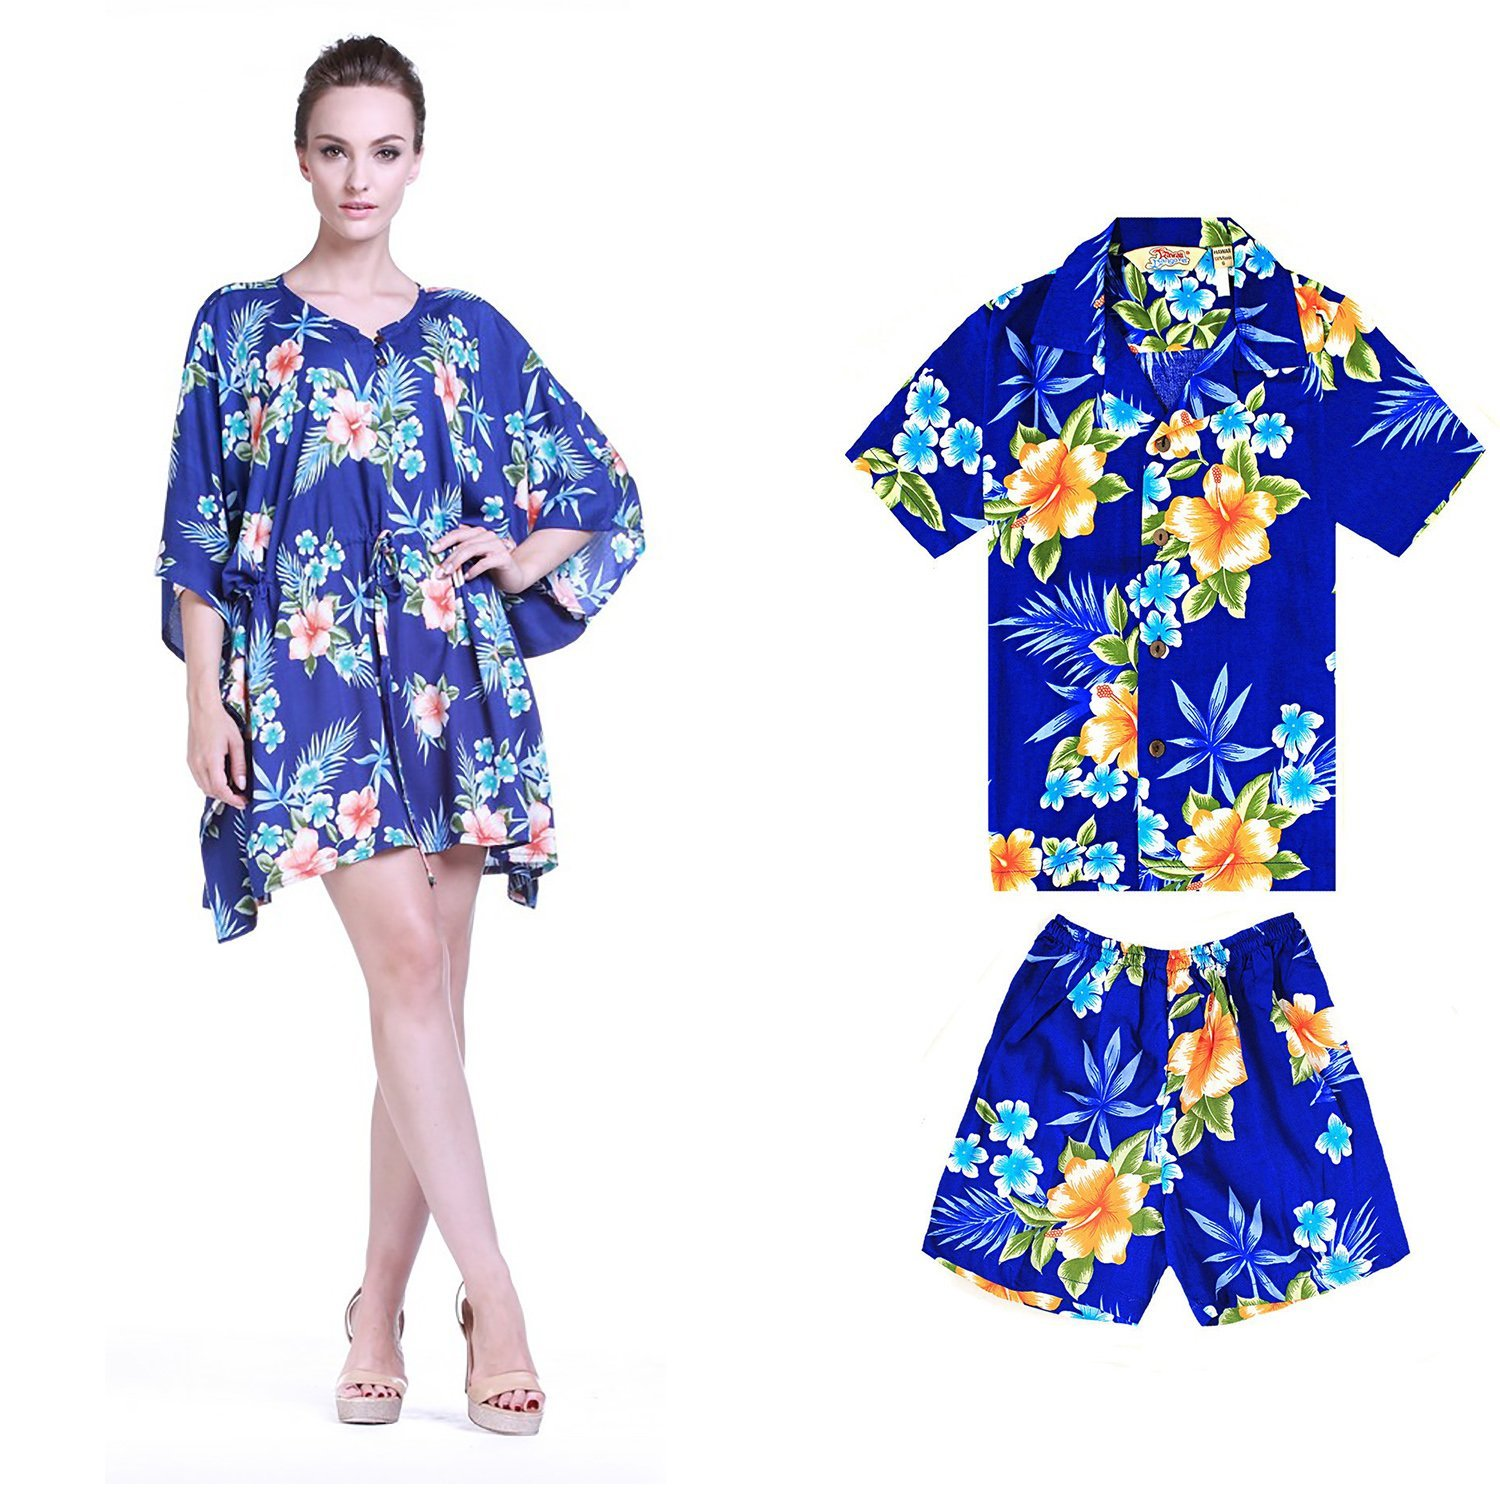 b95fc9536928 Get Quotations · Hawaii Hangover Matching Mother Son Hawaiian Luau Outfit  Poncho Dress Shirt In Hibiscus Pattern In 2